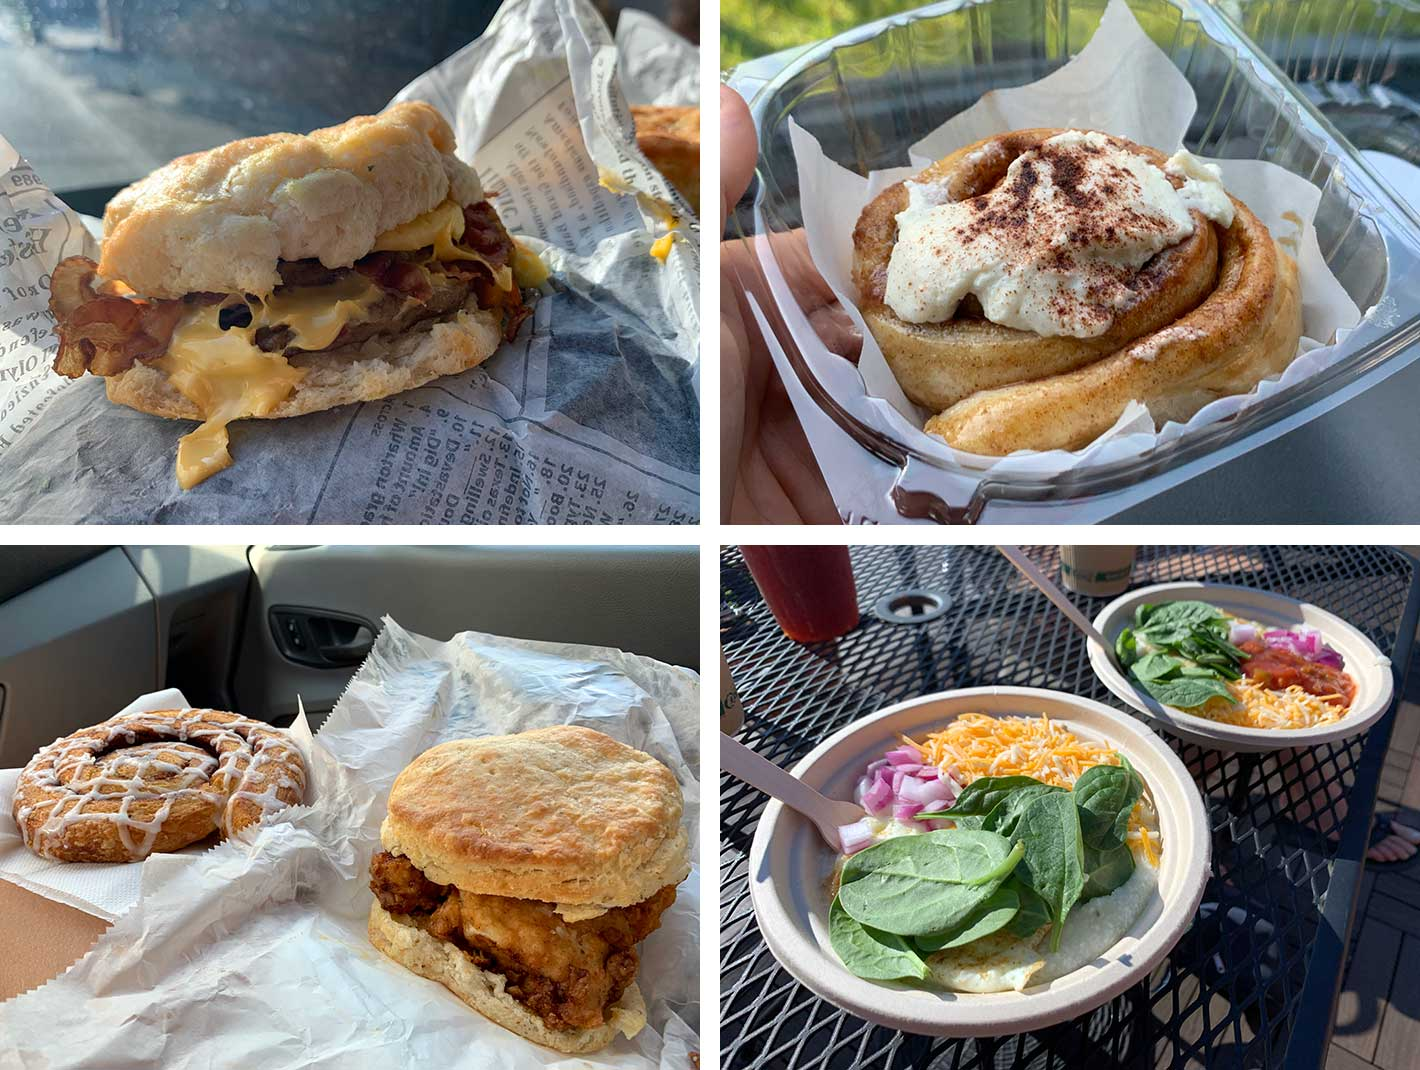 breakfast foods and biscuits from scratch crumbles and downshift coffee shop